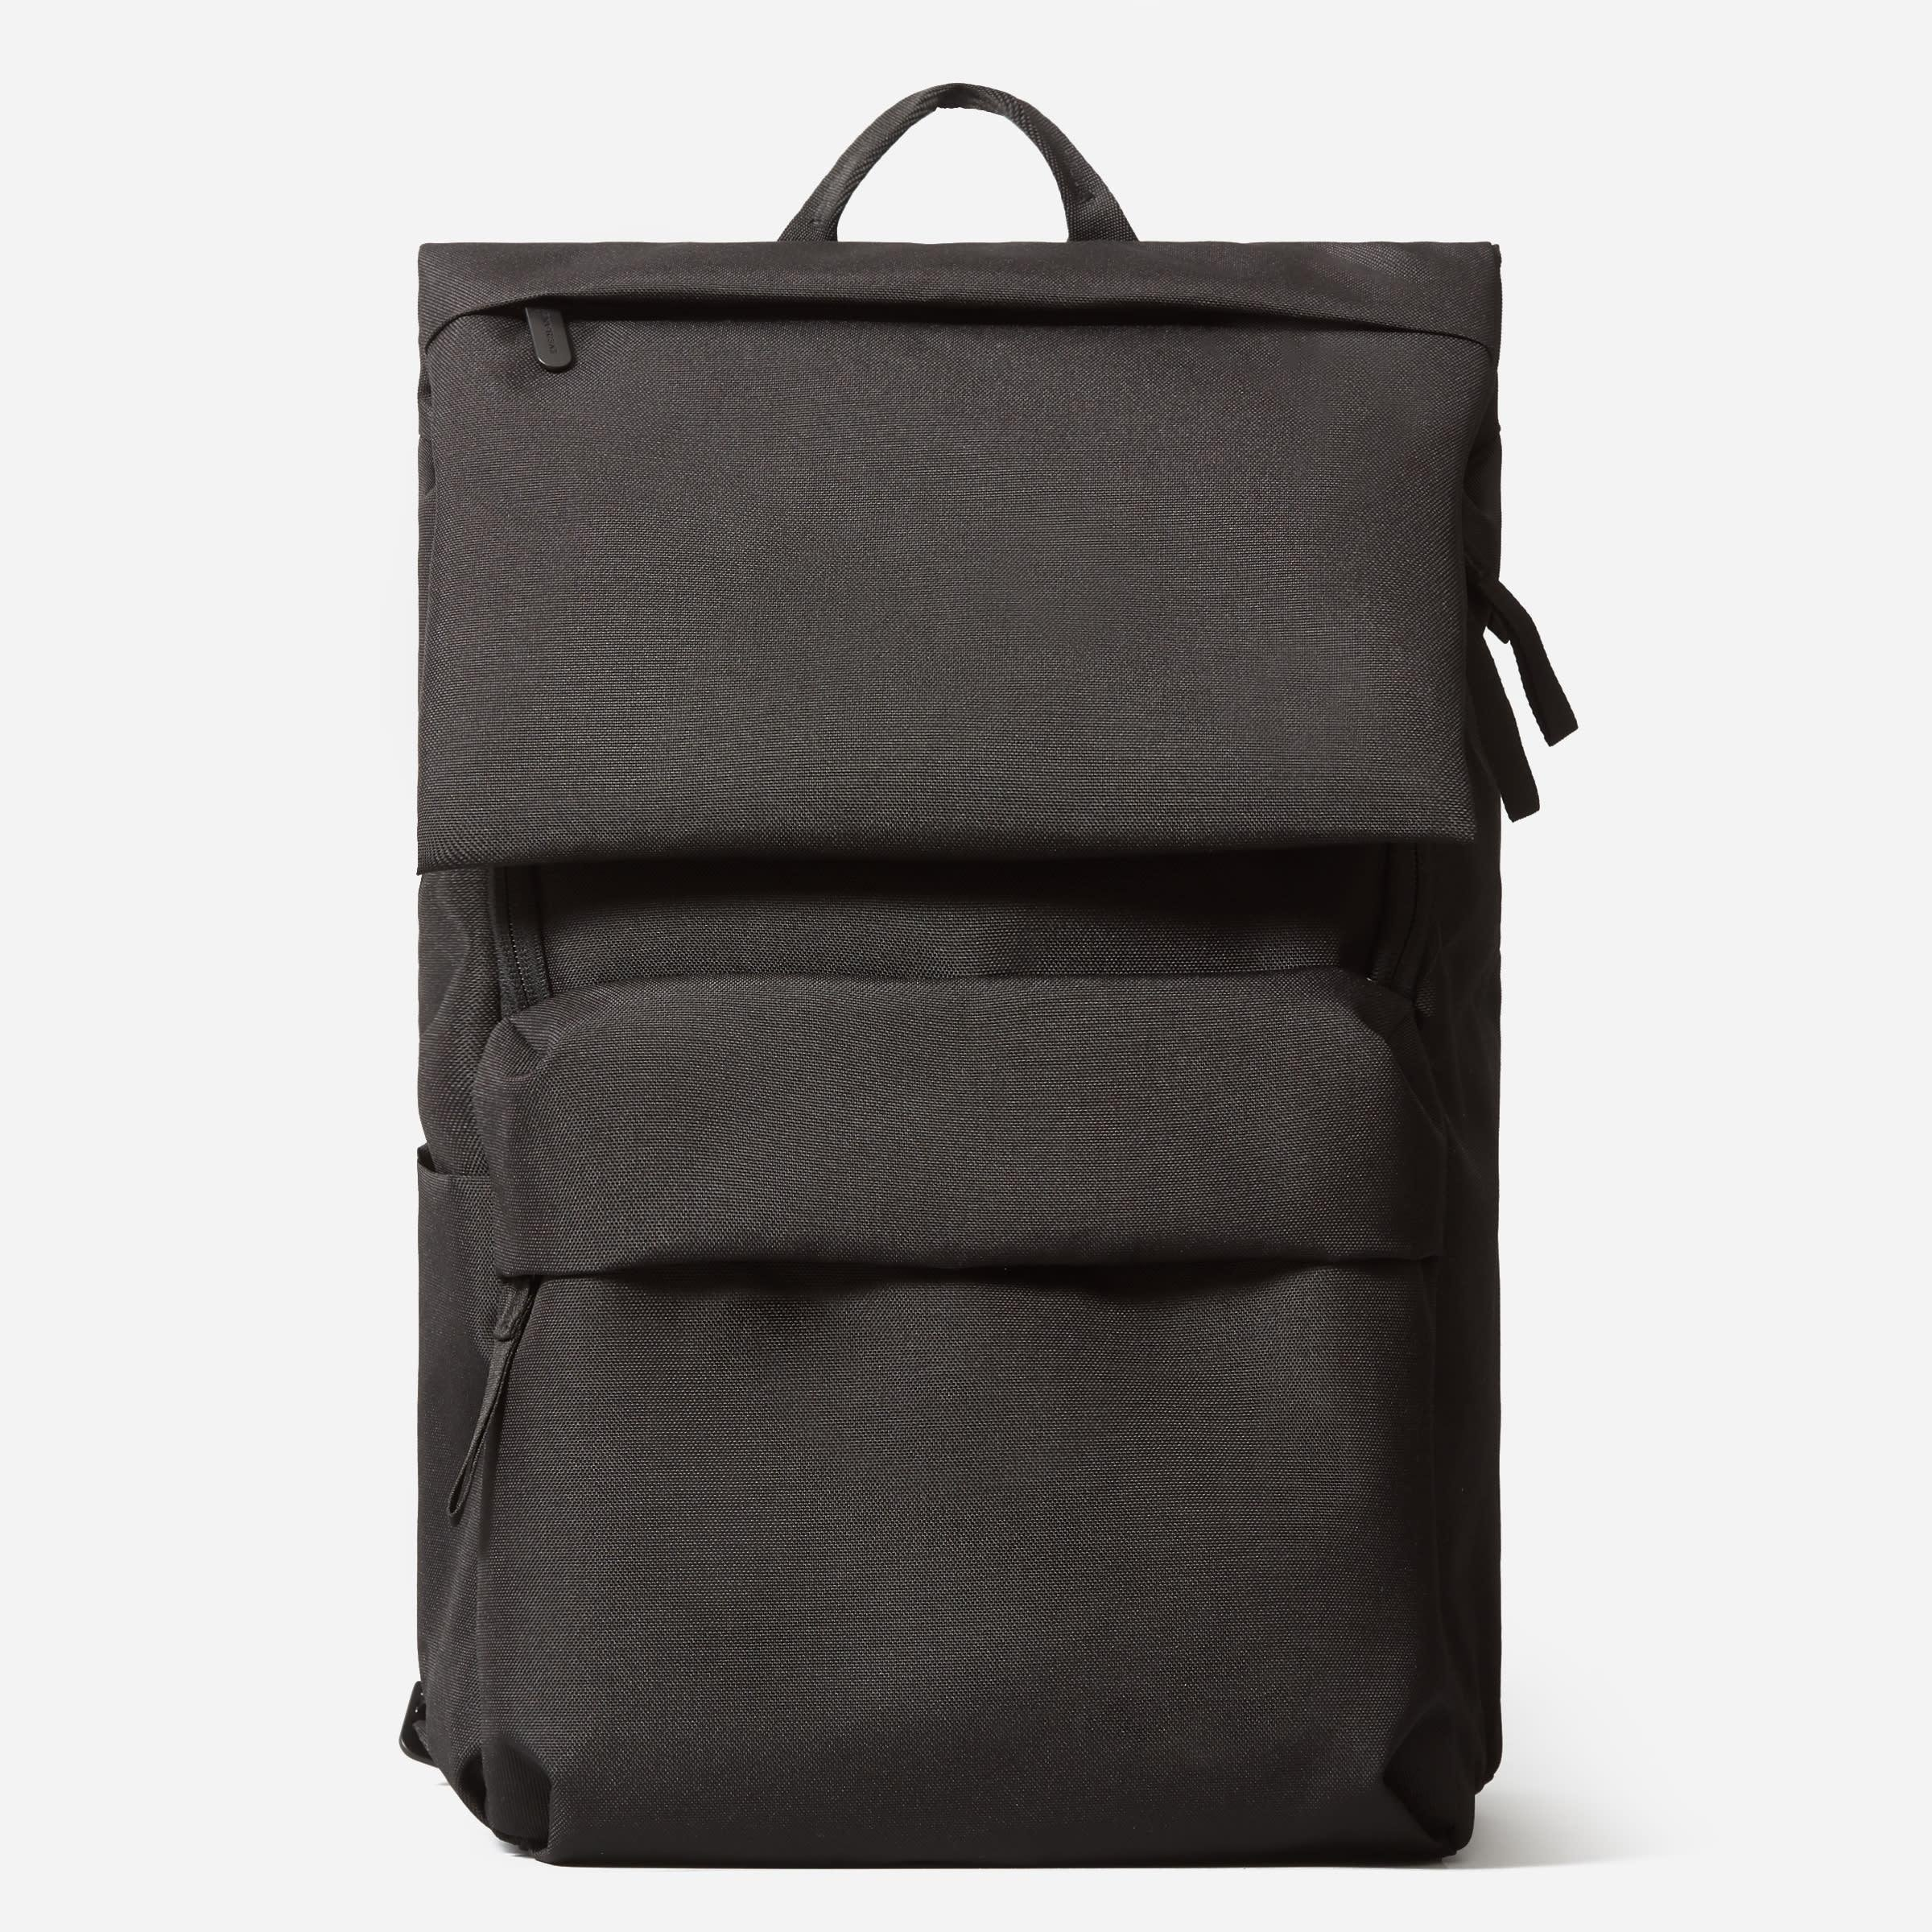 The ReNew 15 Inch Transit Backpack